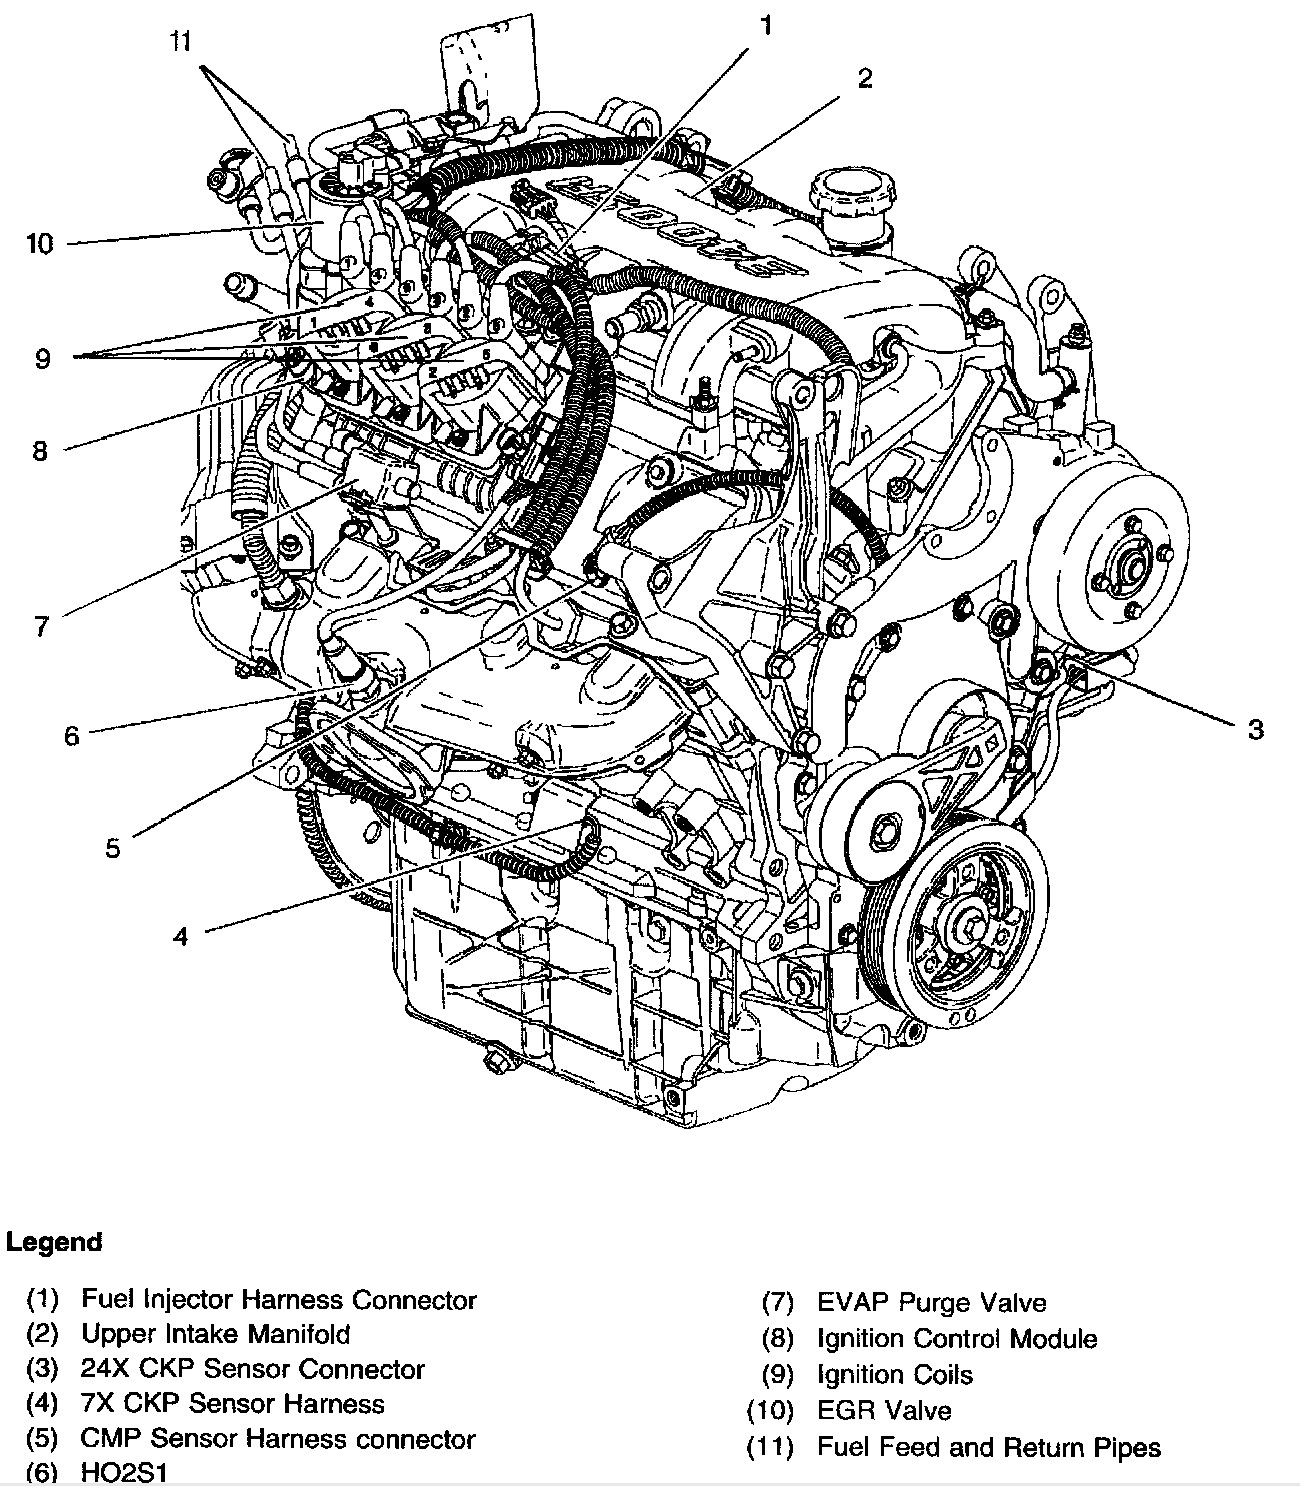 hight resolution of chevrolet engine schematics wiring diagram files gm 5 3 engine diagram chevrolet 2 2 liter engine diagram